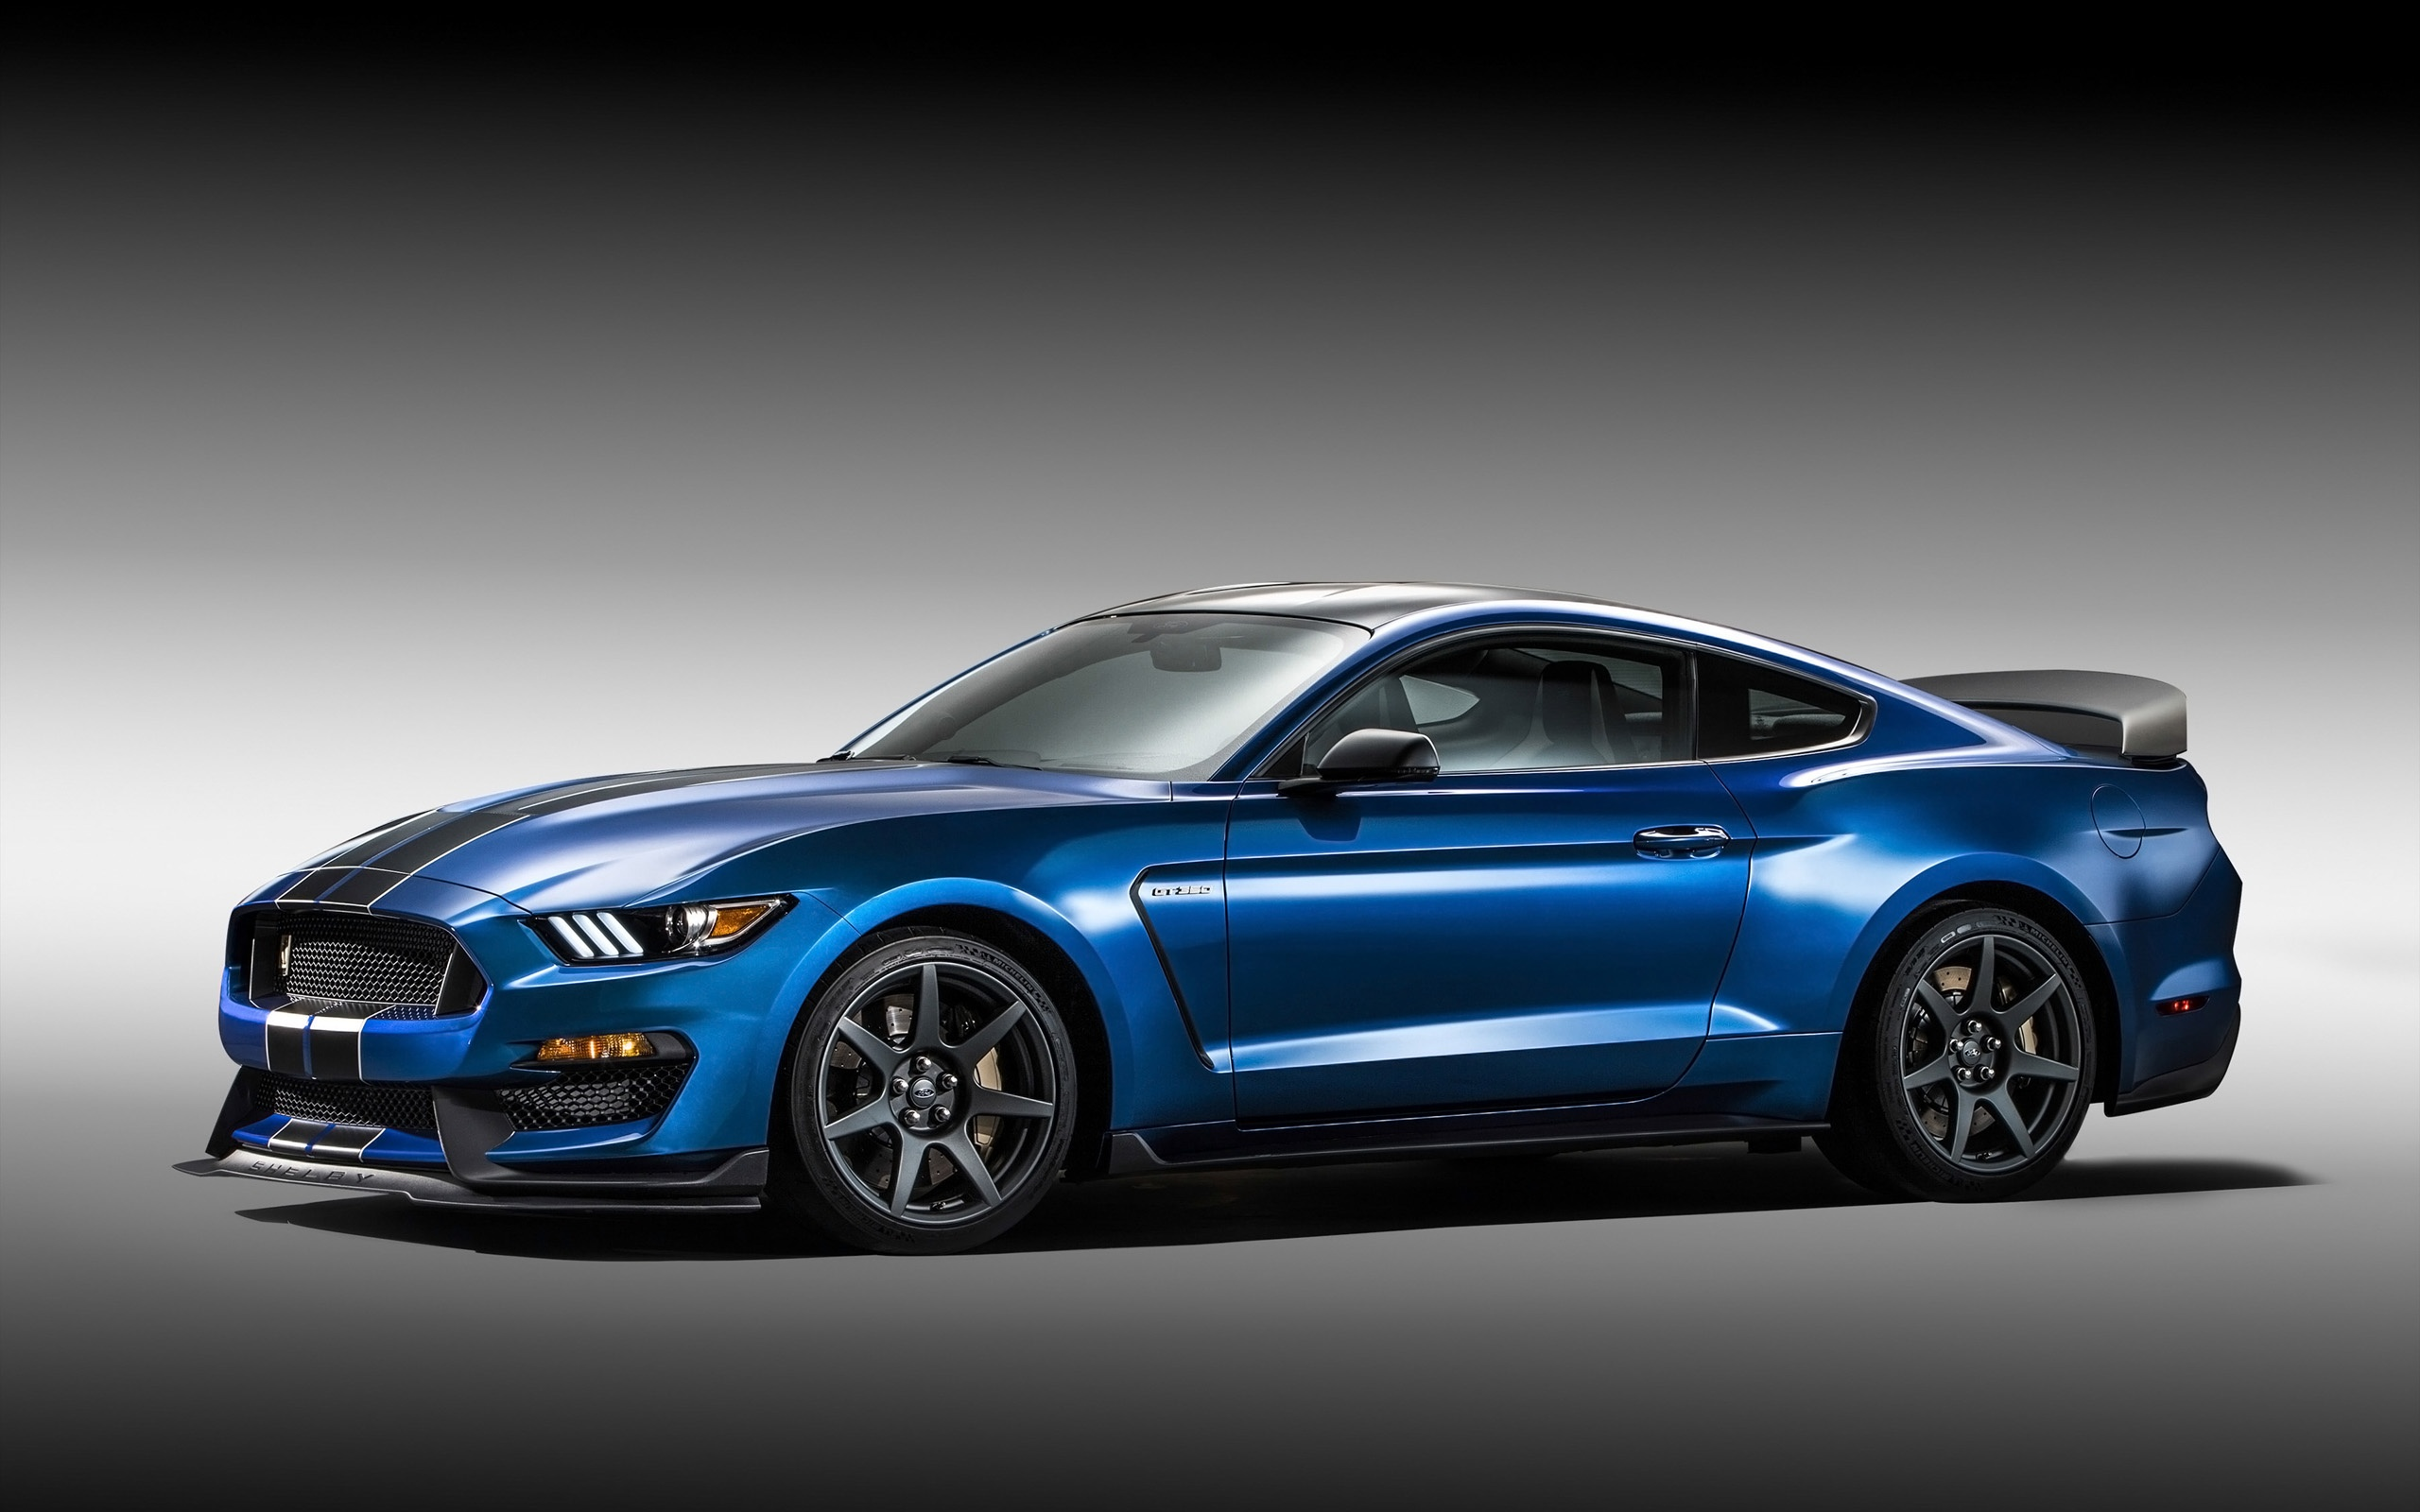 2016 Ford Shelby GT350R Mustang Wallpaper HD Car Wallpapers 2560x1600